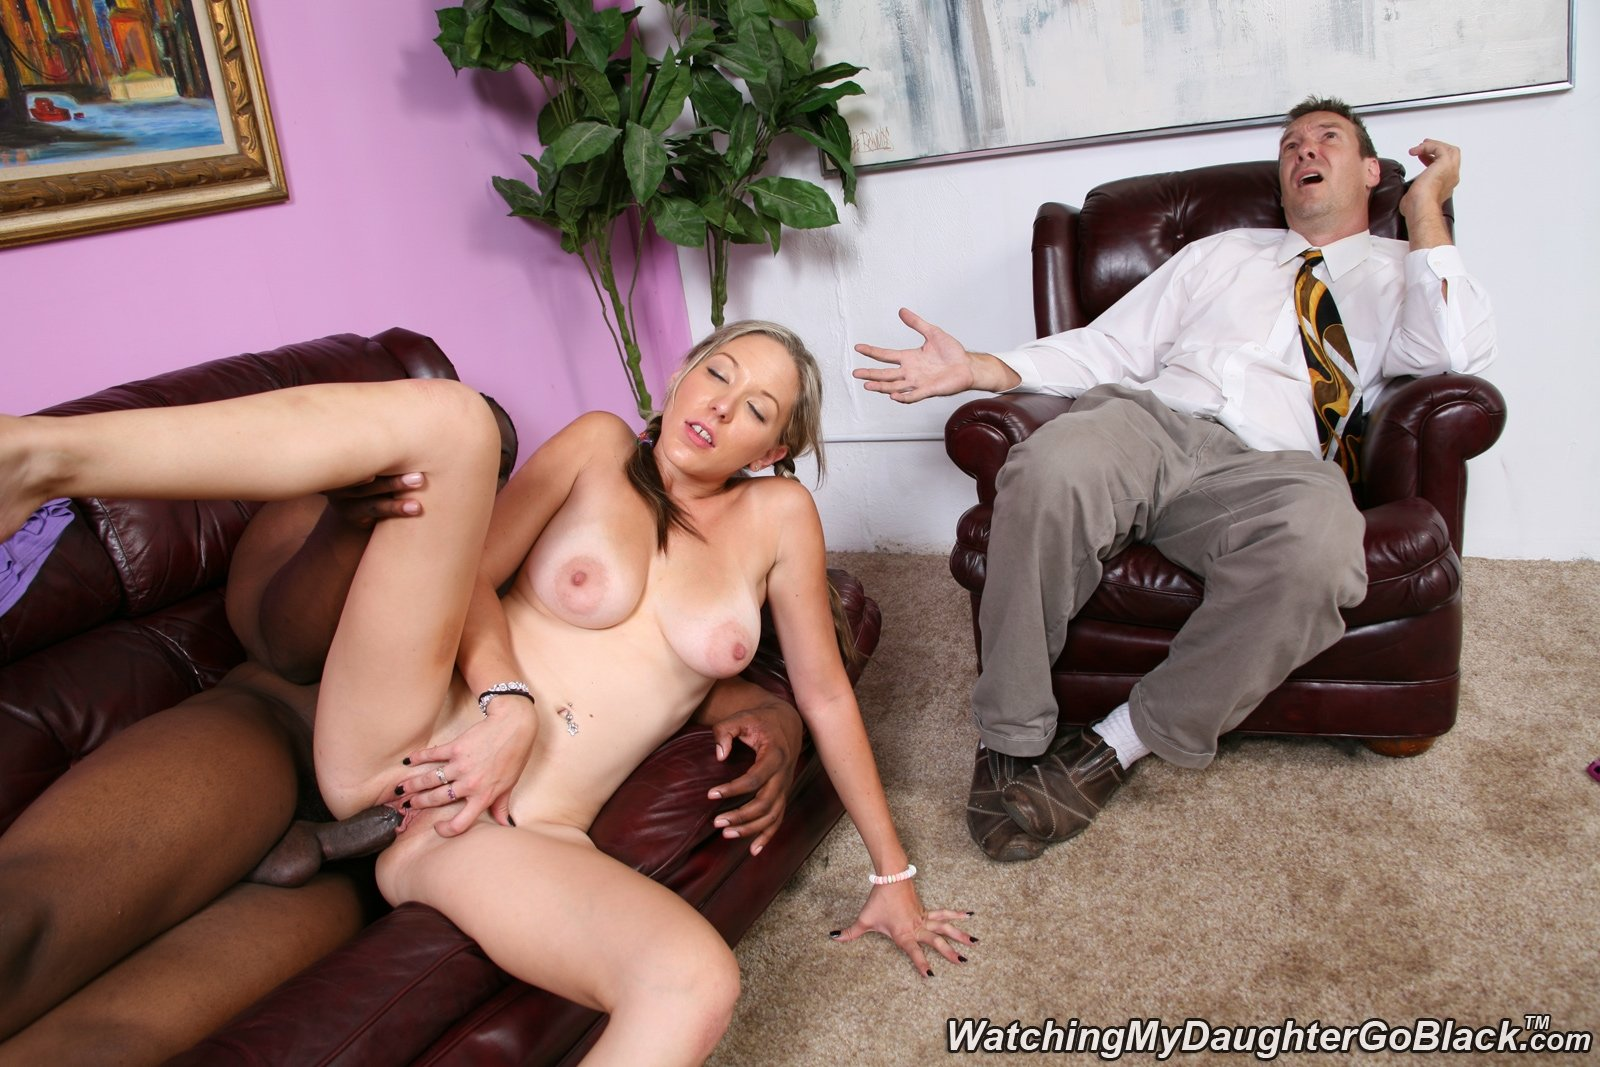 Big tits wife creampie euphoria swingers club